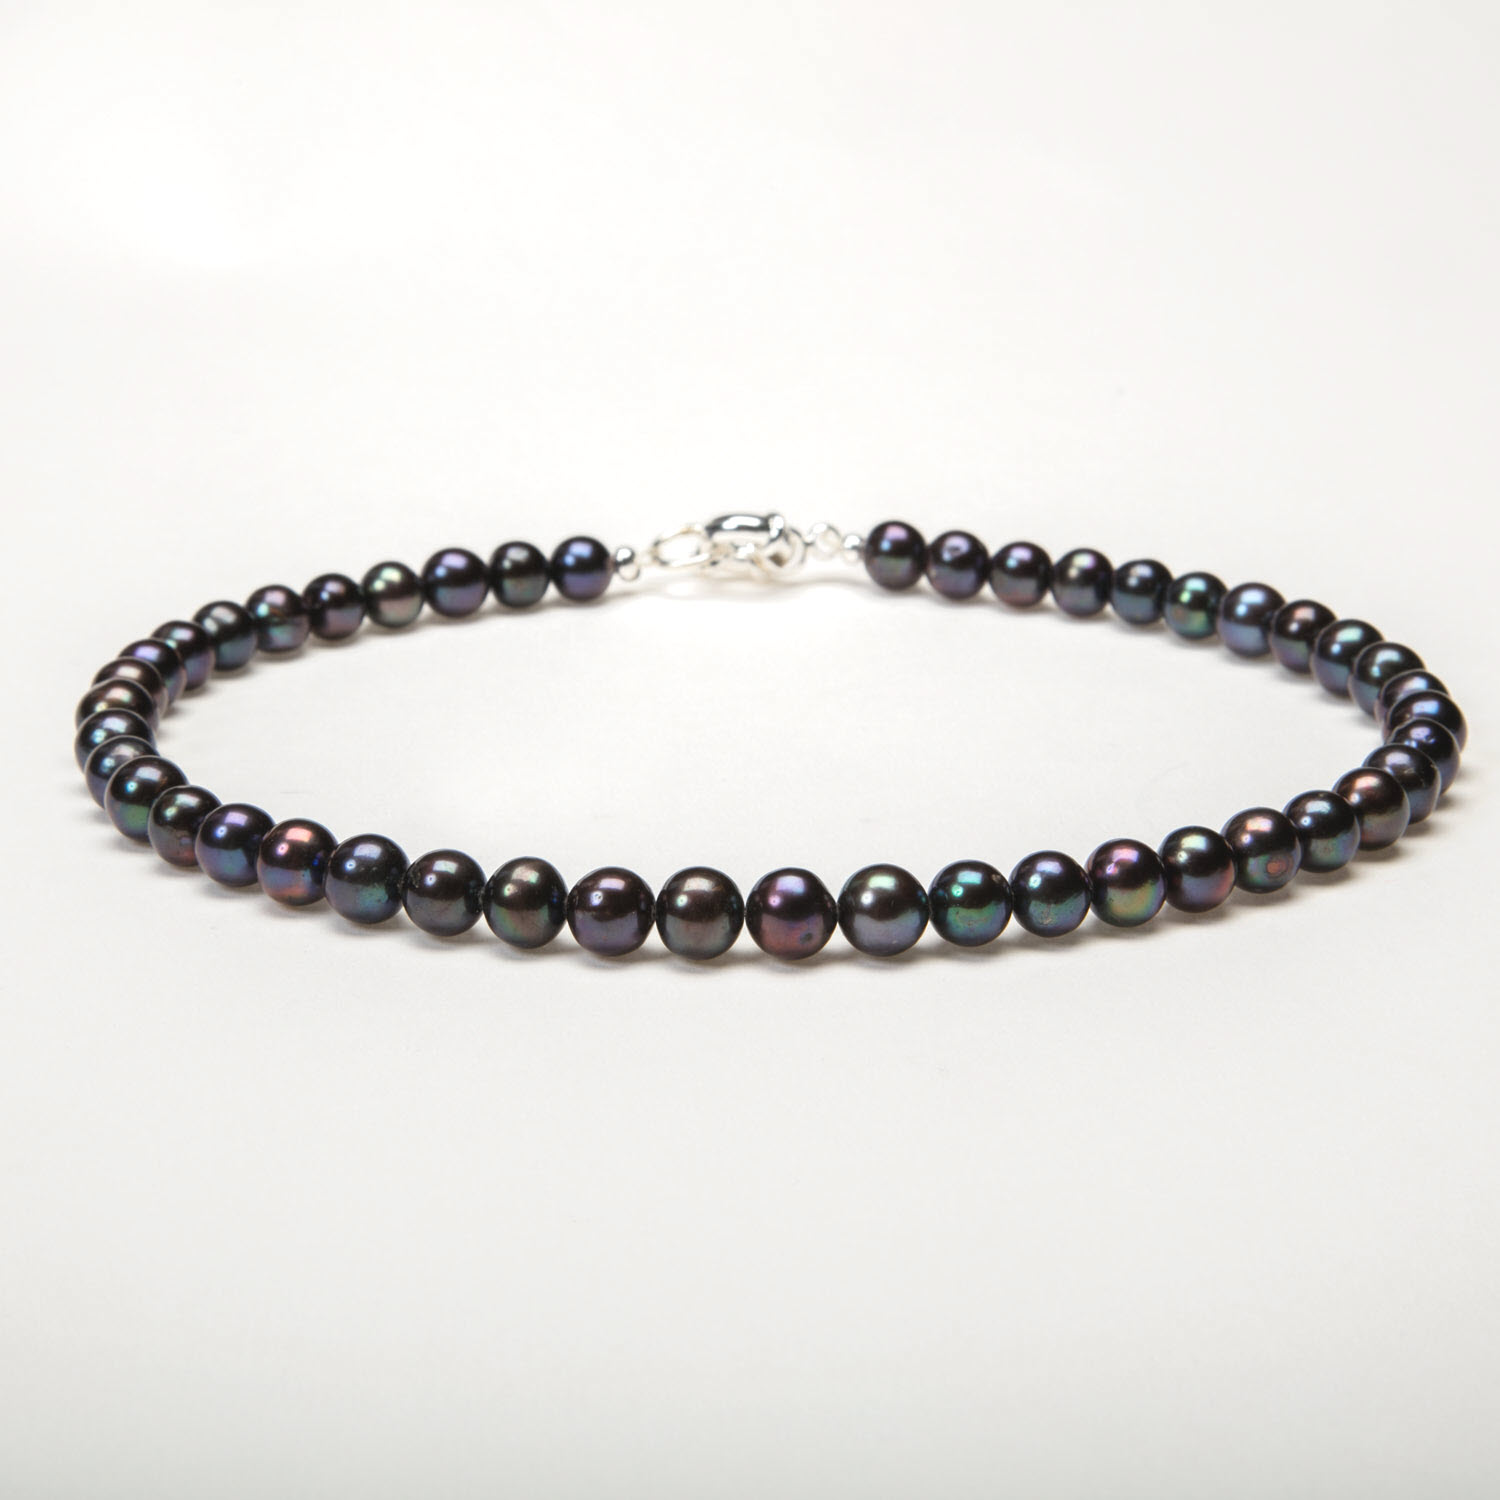 Tahitian Black Round Pearl Necklace